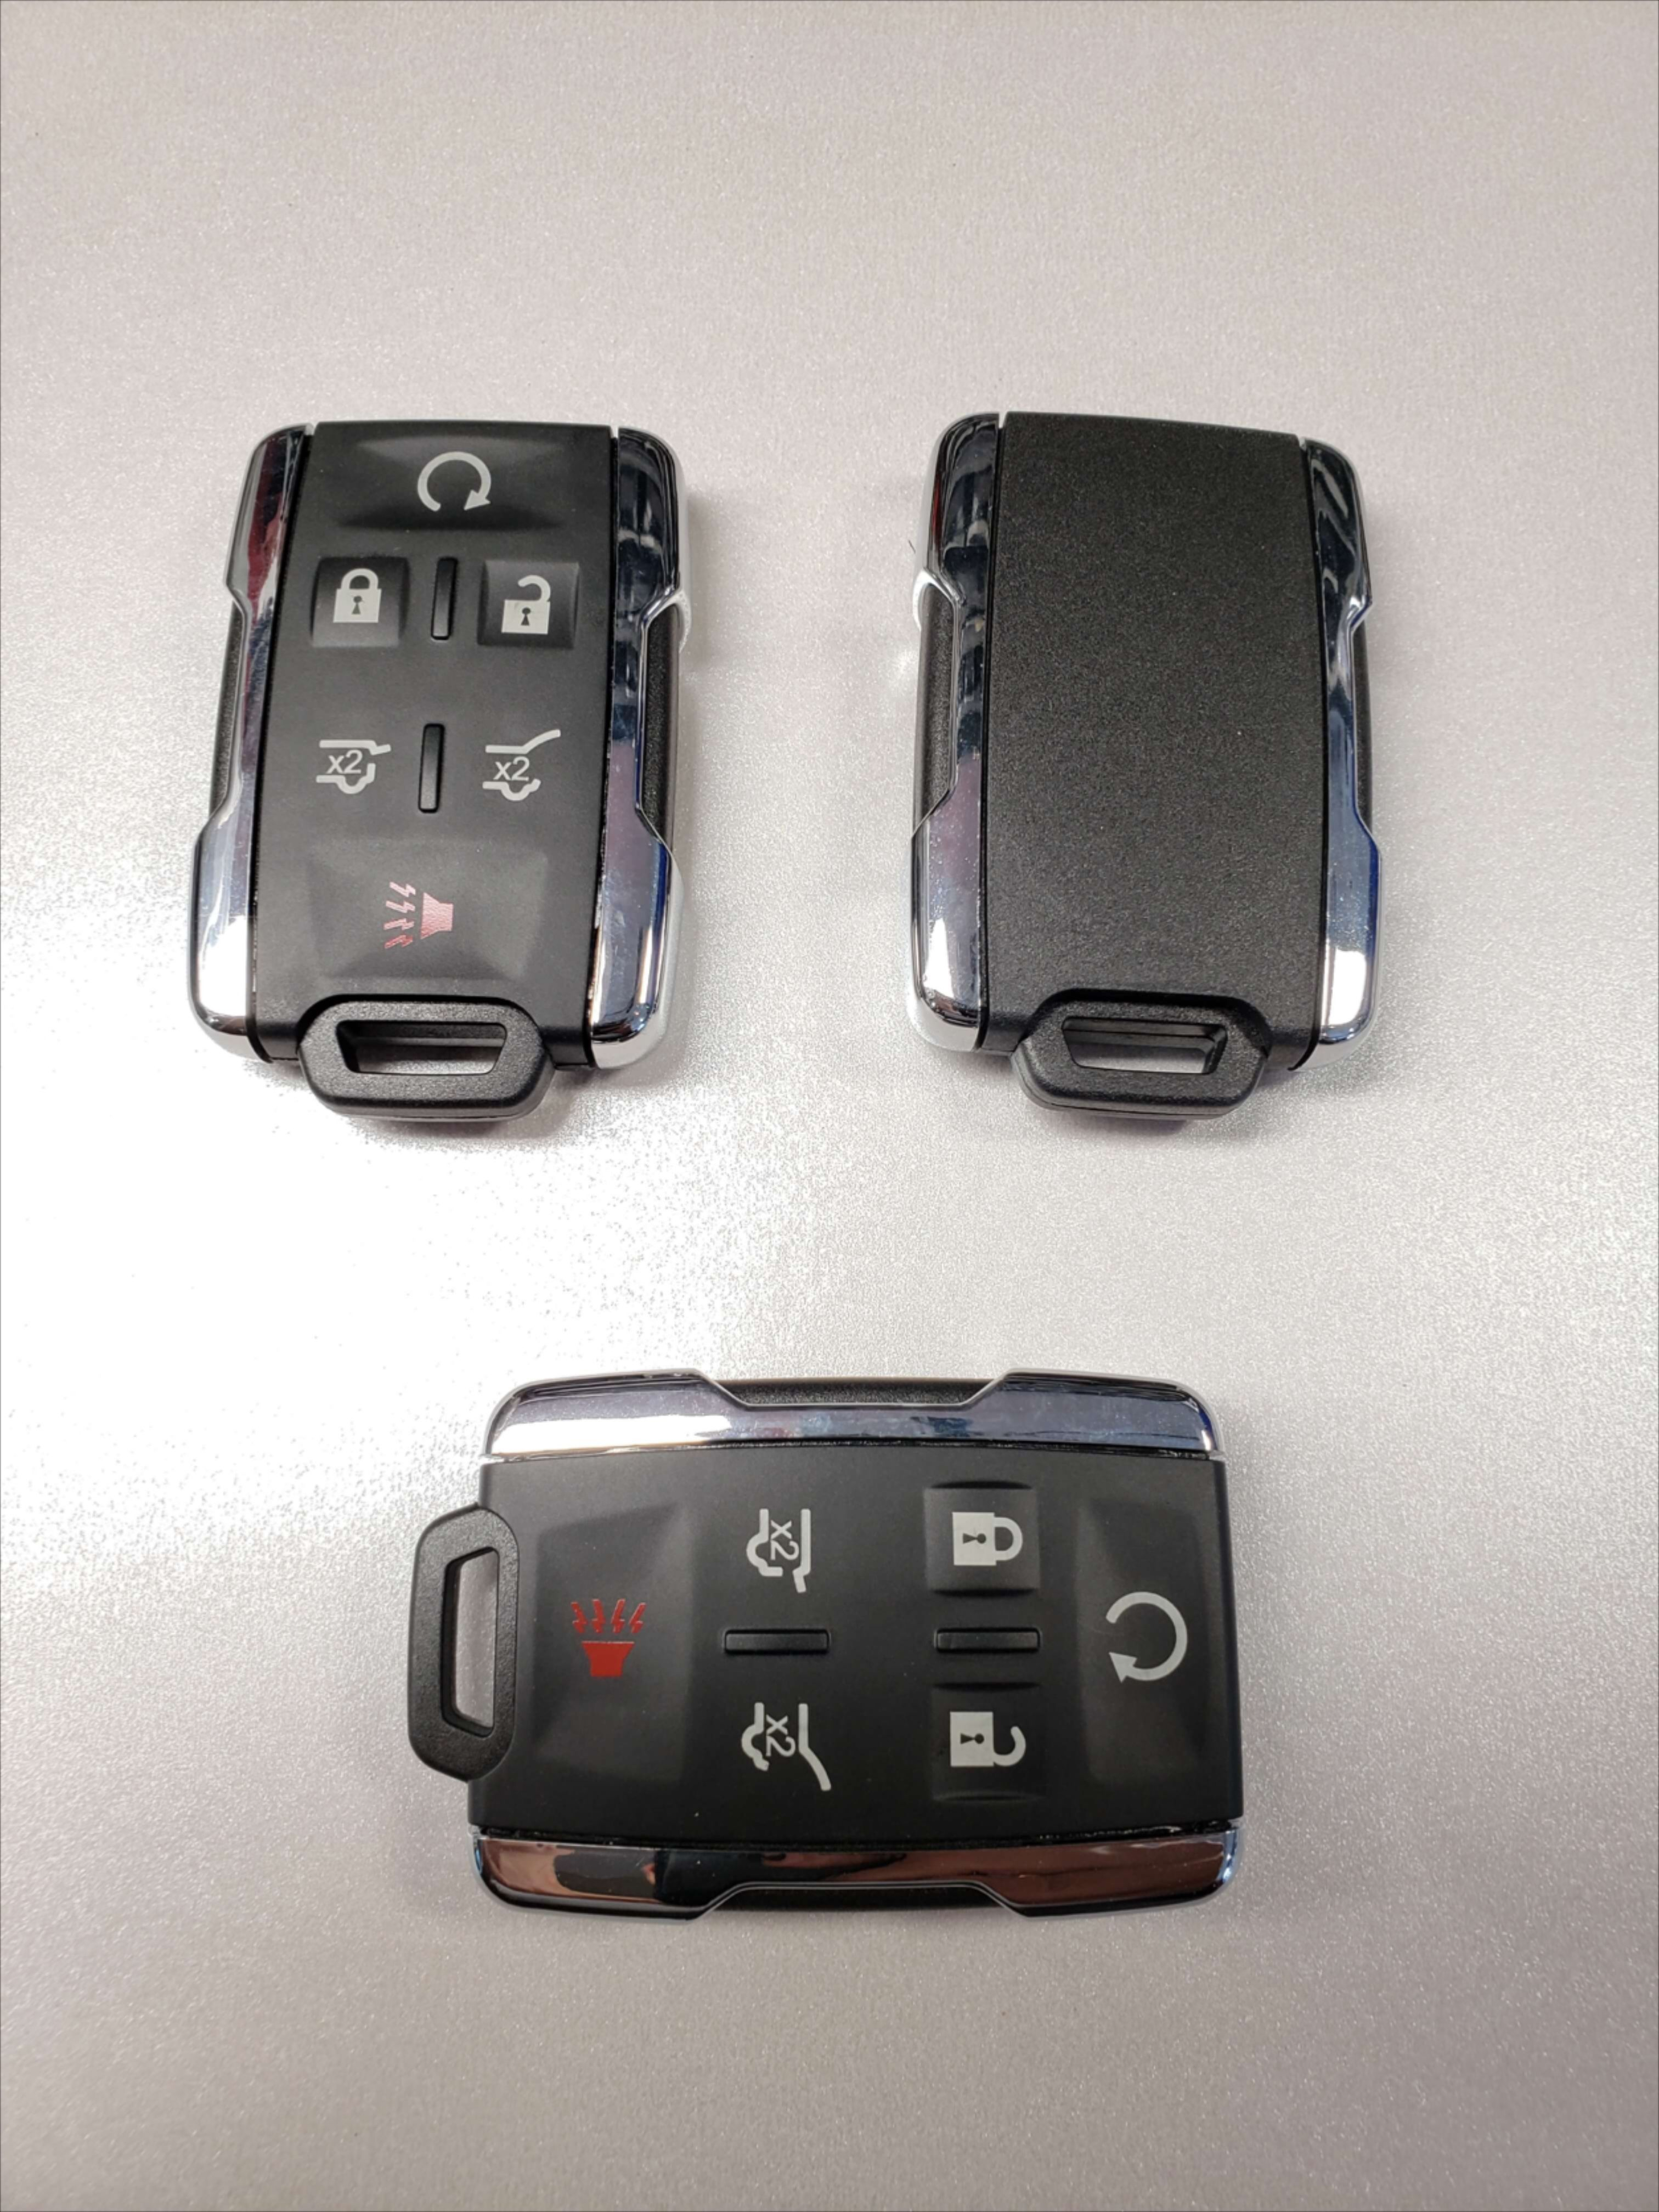 Gmc canyon car keys replacement all the information you